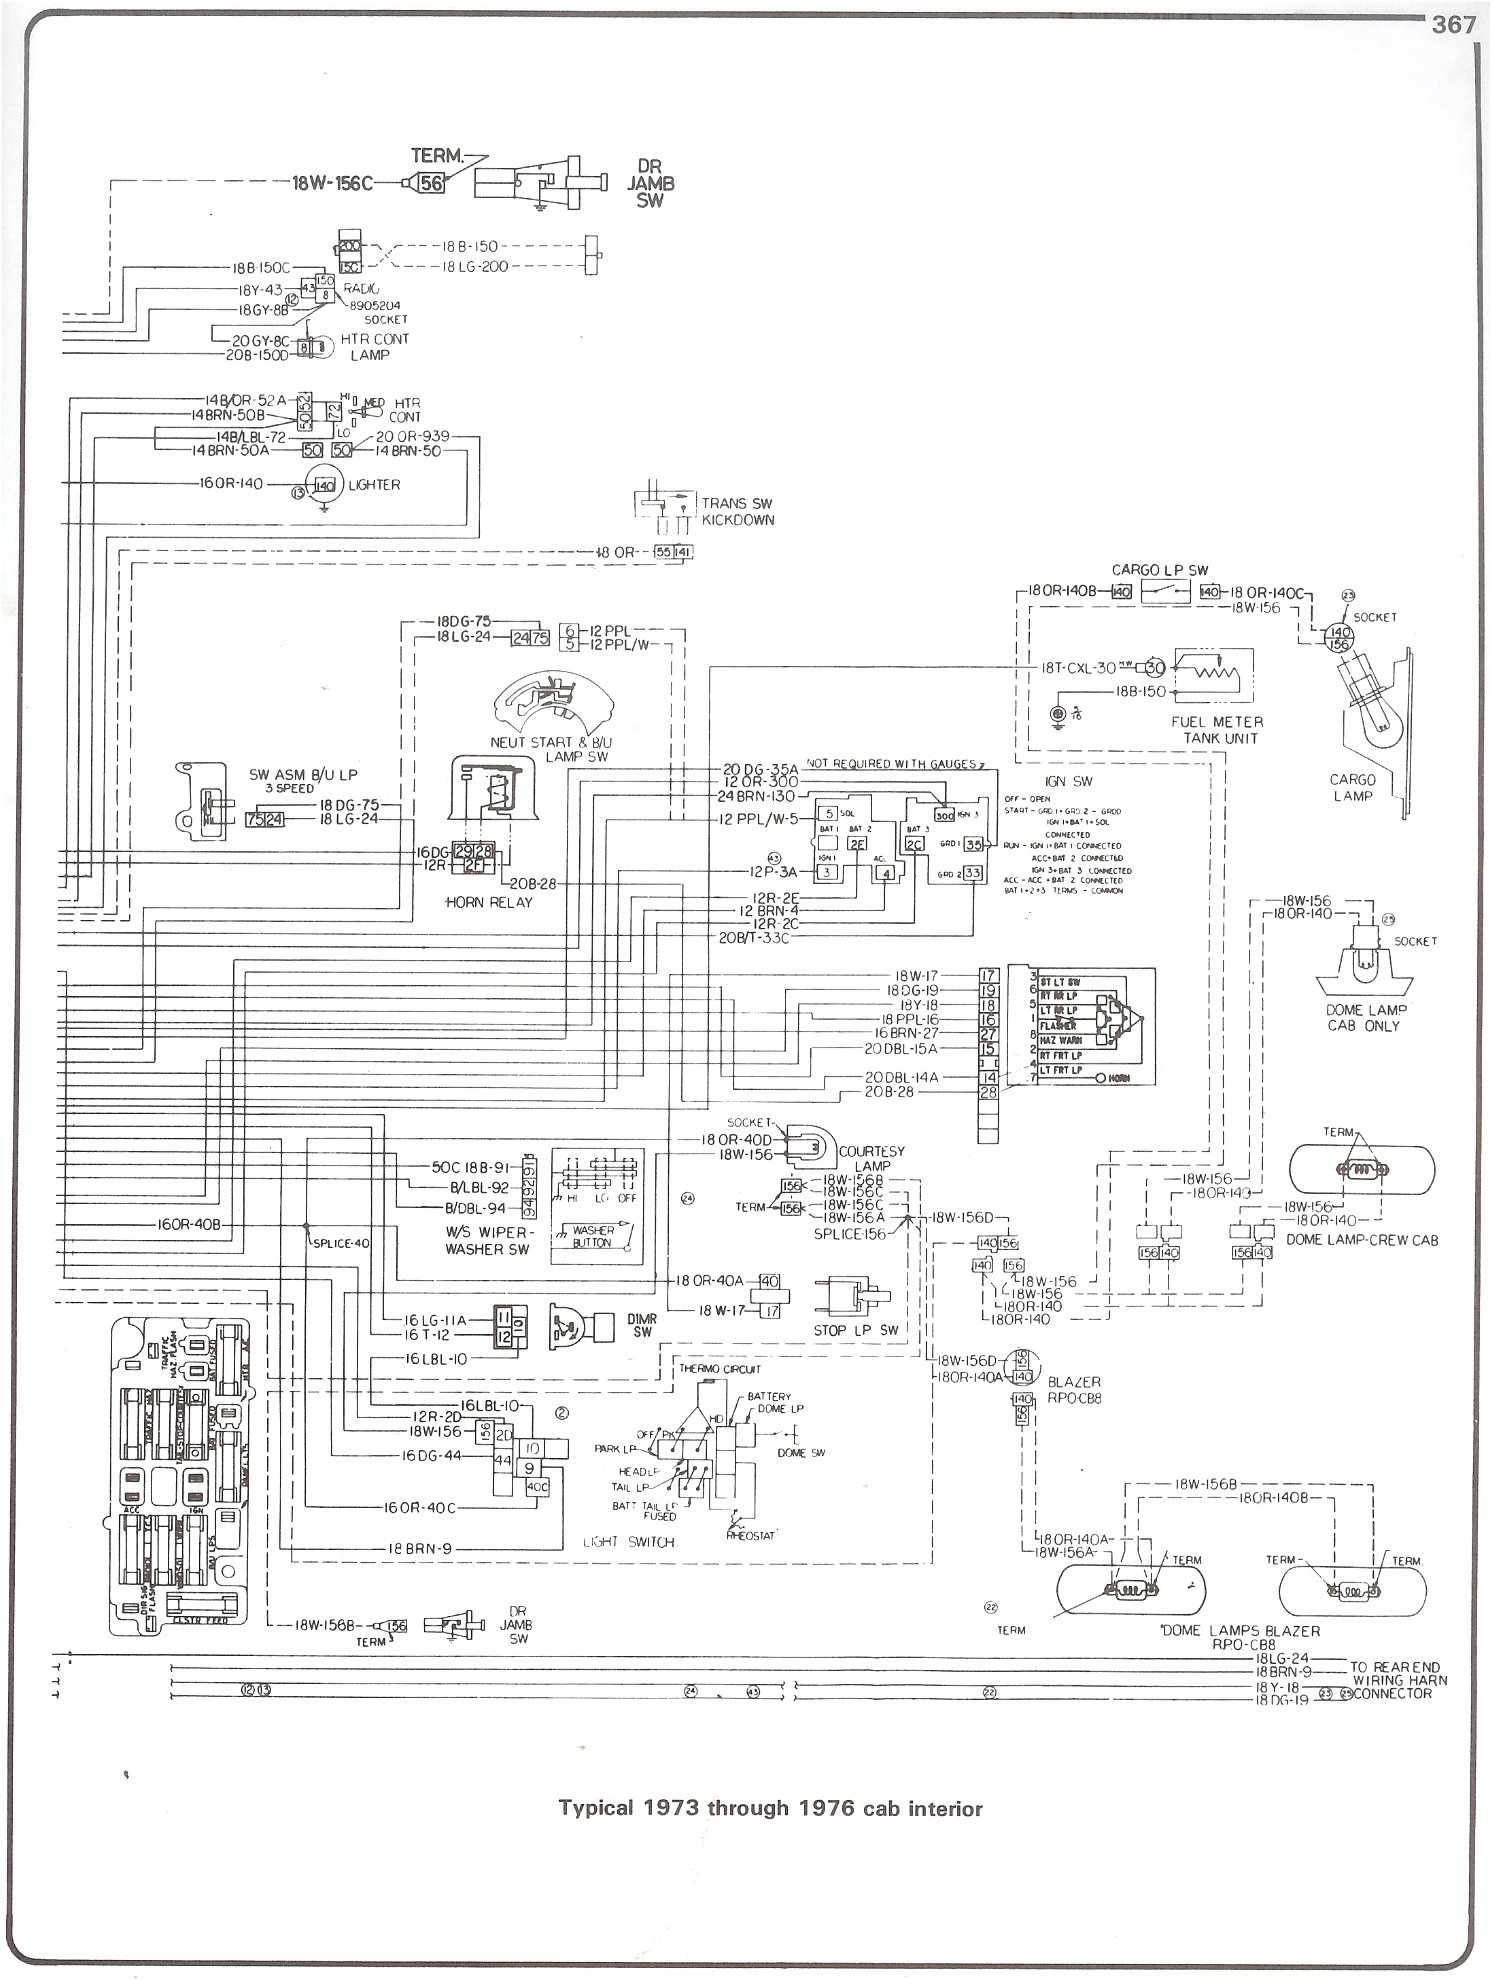 hight resolution of complete 73 87 wiring diagrams1987 chevy pickup wiring diagram 2